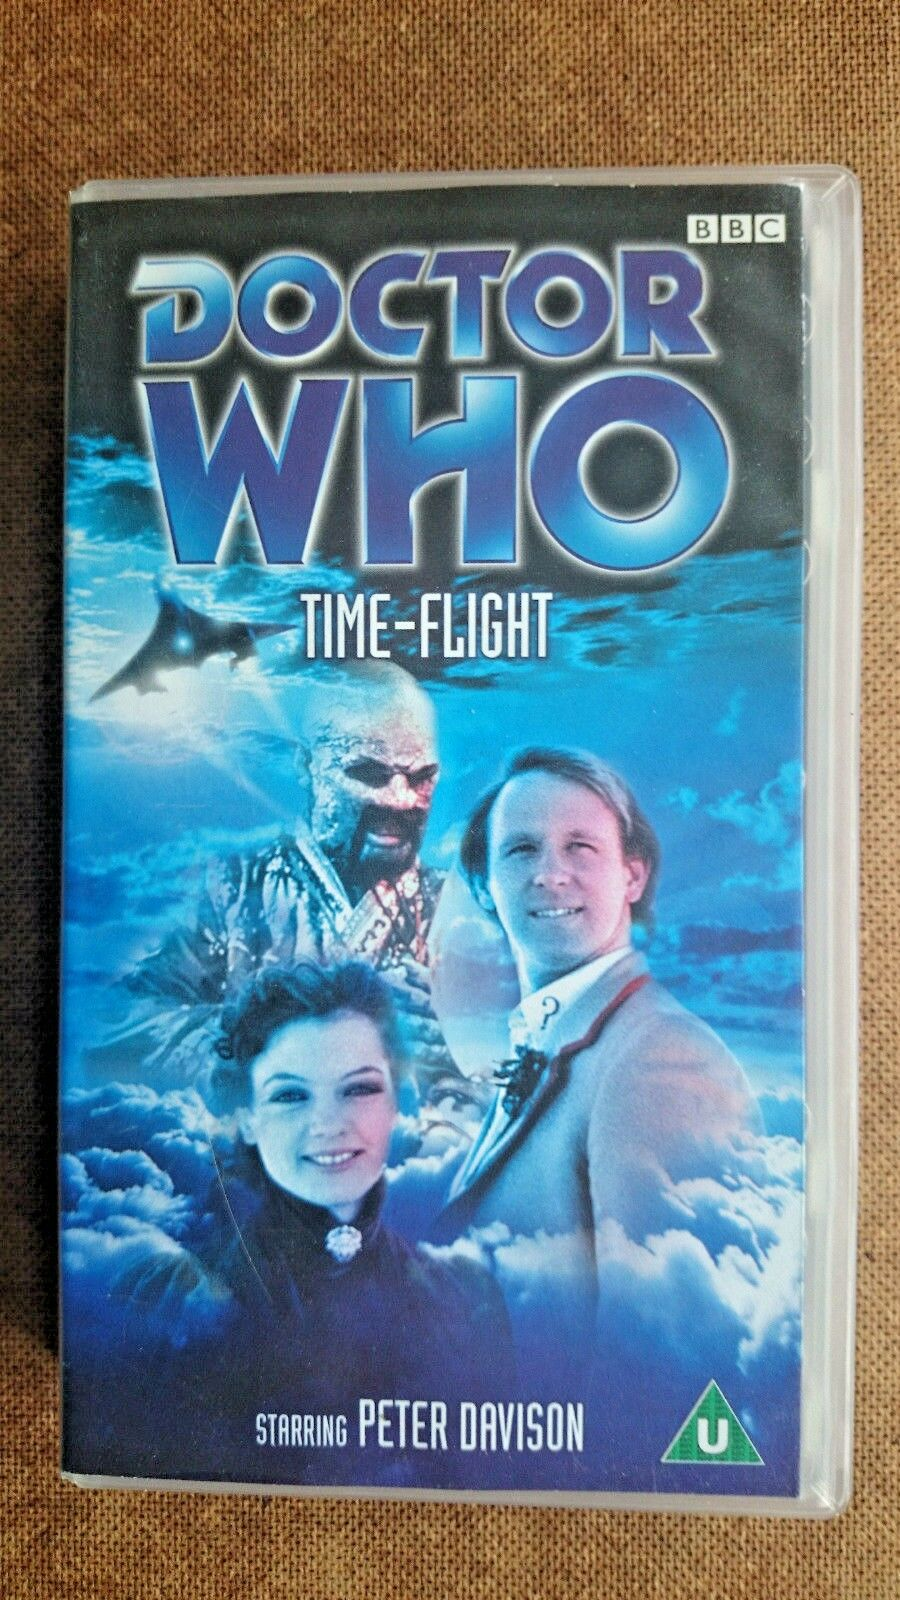 Doctor Who - Time Flight (VHS, 2000) - Peter Davidson